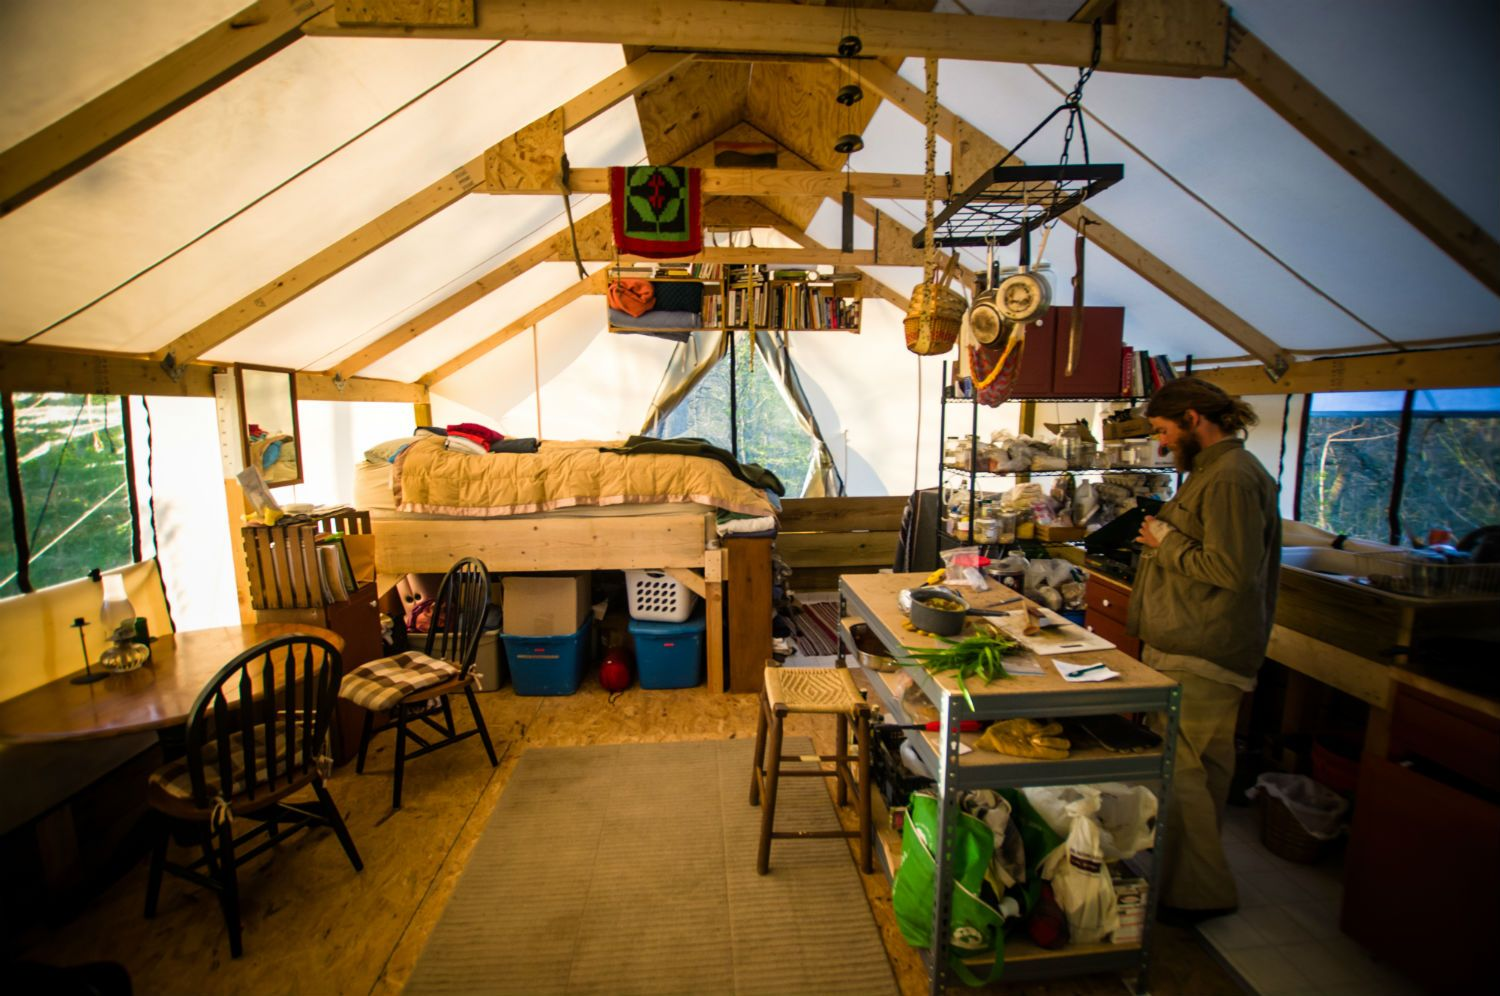 Off Grid Tent Style Living & Living Simply | witf.org | Outdoor Kitchen | Pinterest | Tents ...